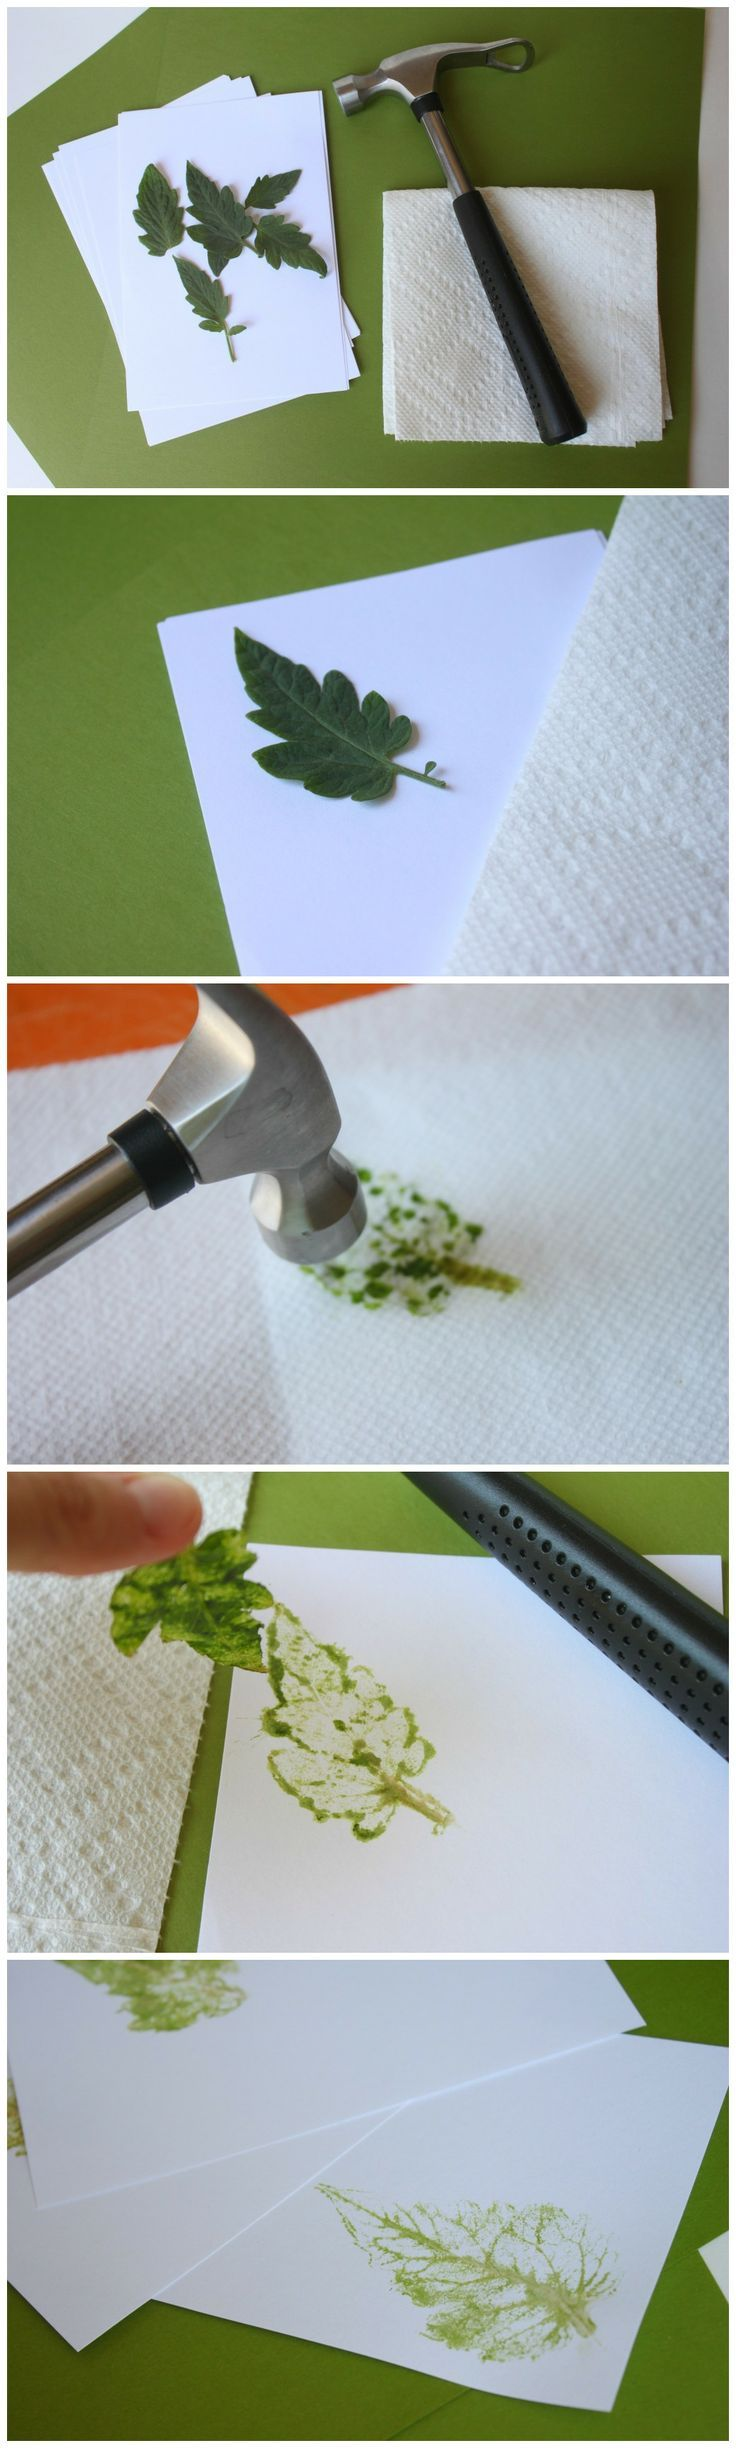 Leaf art | This would be such a fun art project to do with kids!